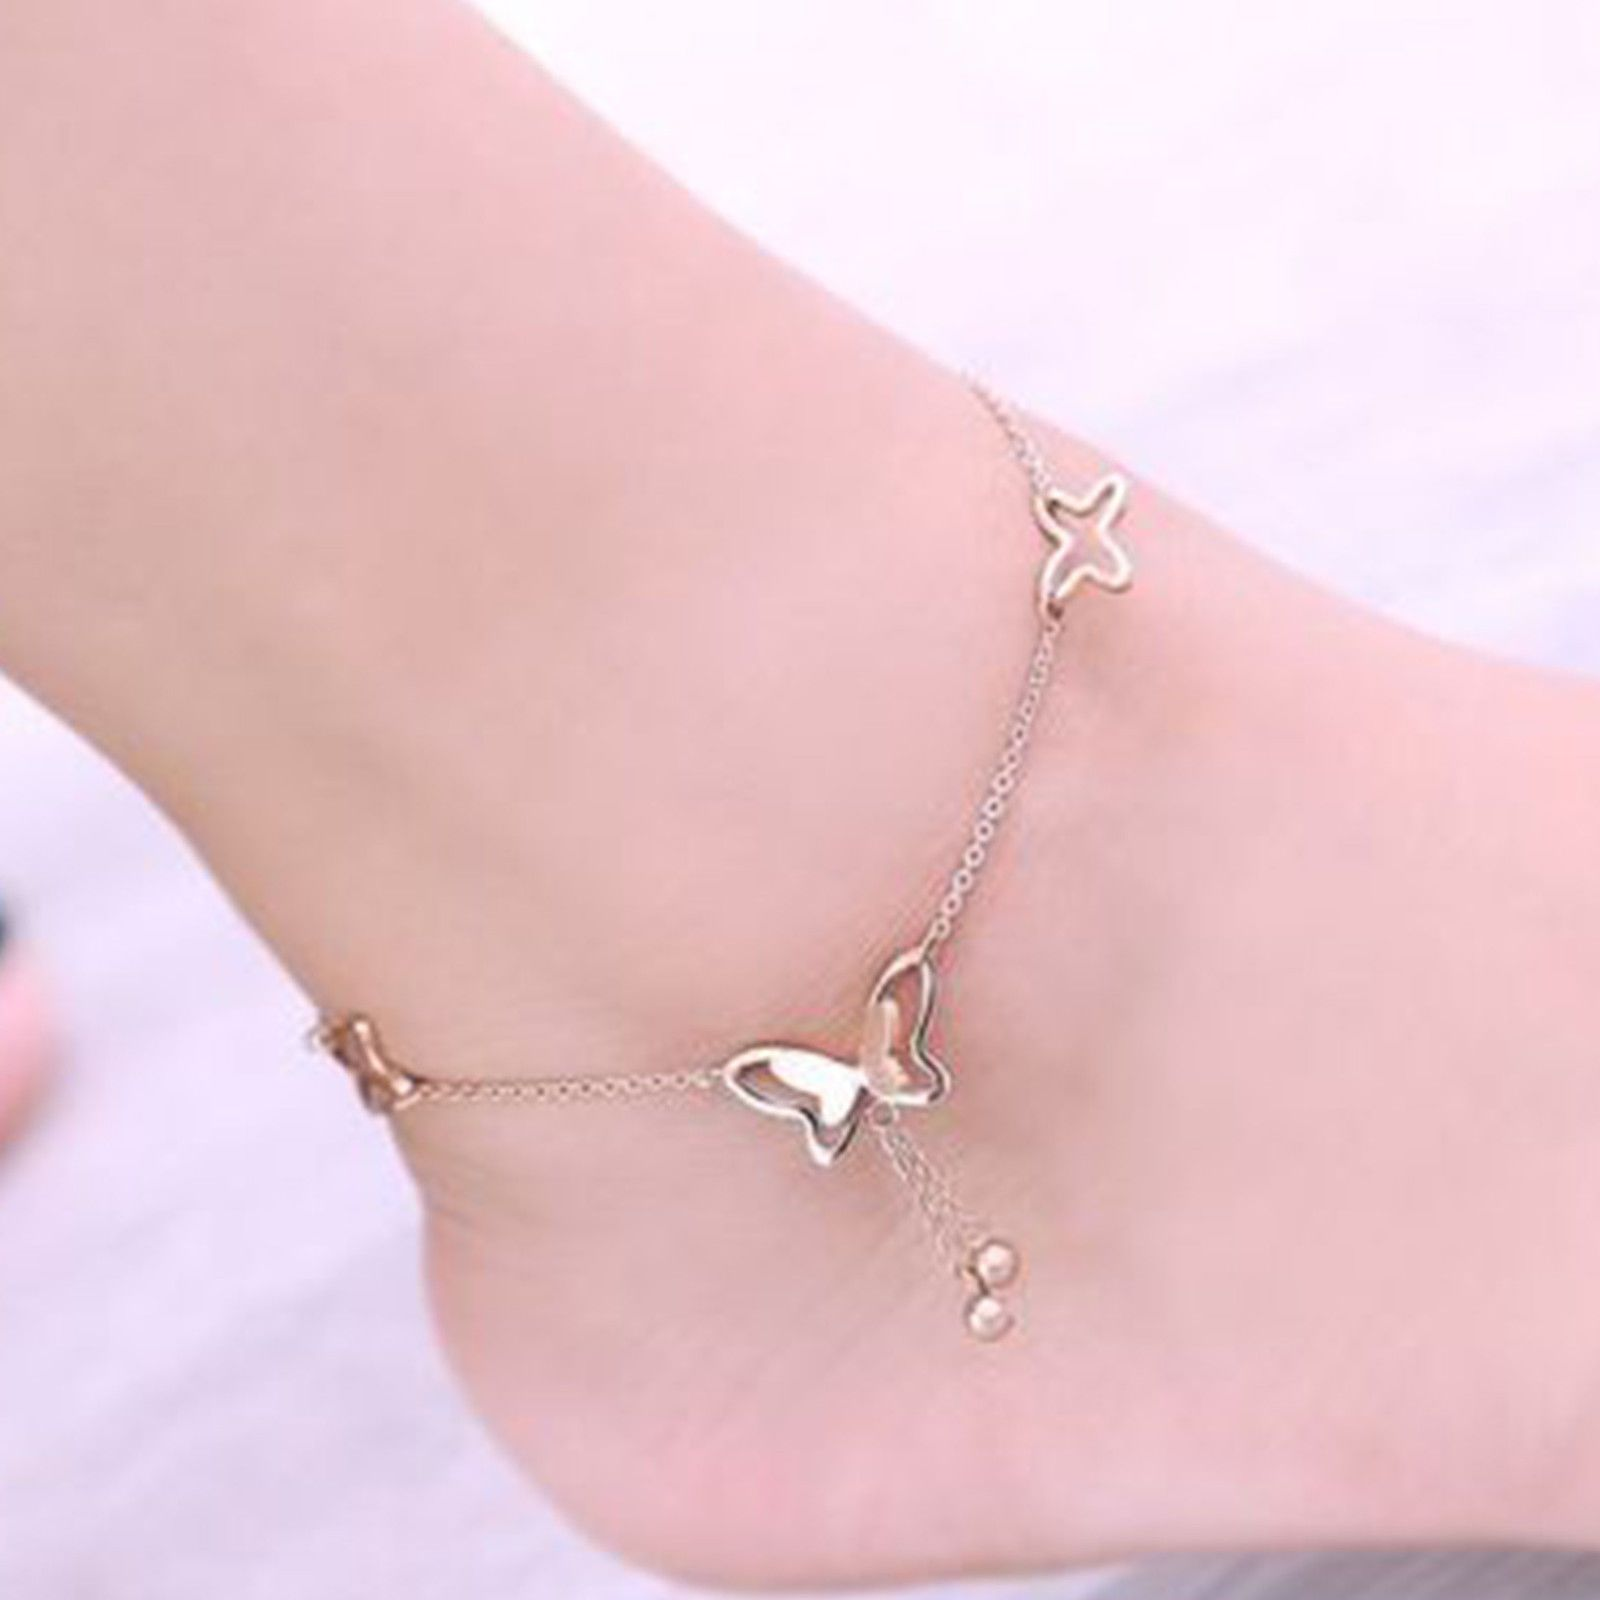 watches shipping anklet product silver today overstock and free hills bracelets jewelry womens bracelet sterling gold ankle black